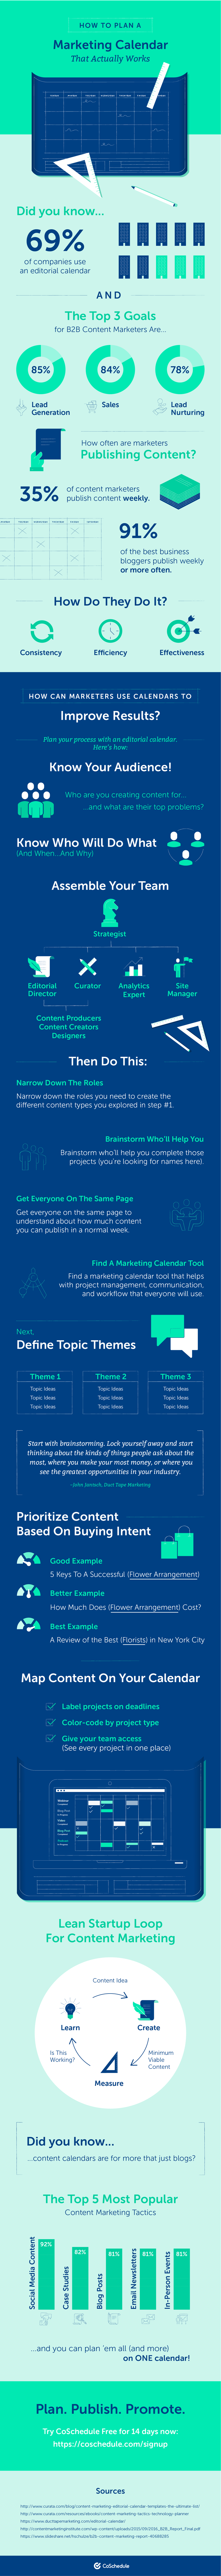 Planning Your Marketing Calendar (Infographic)